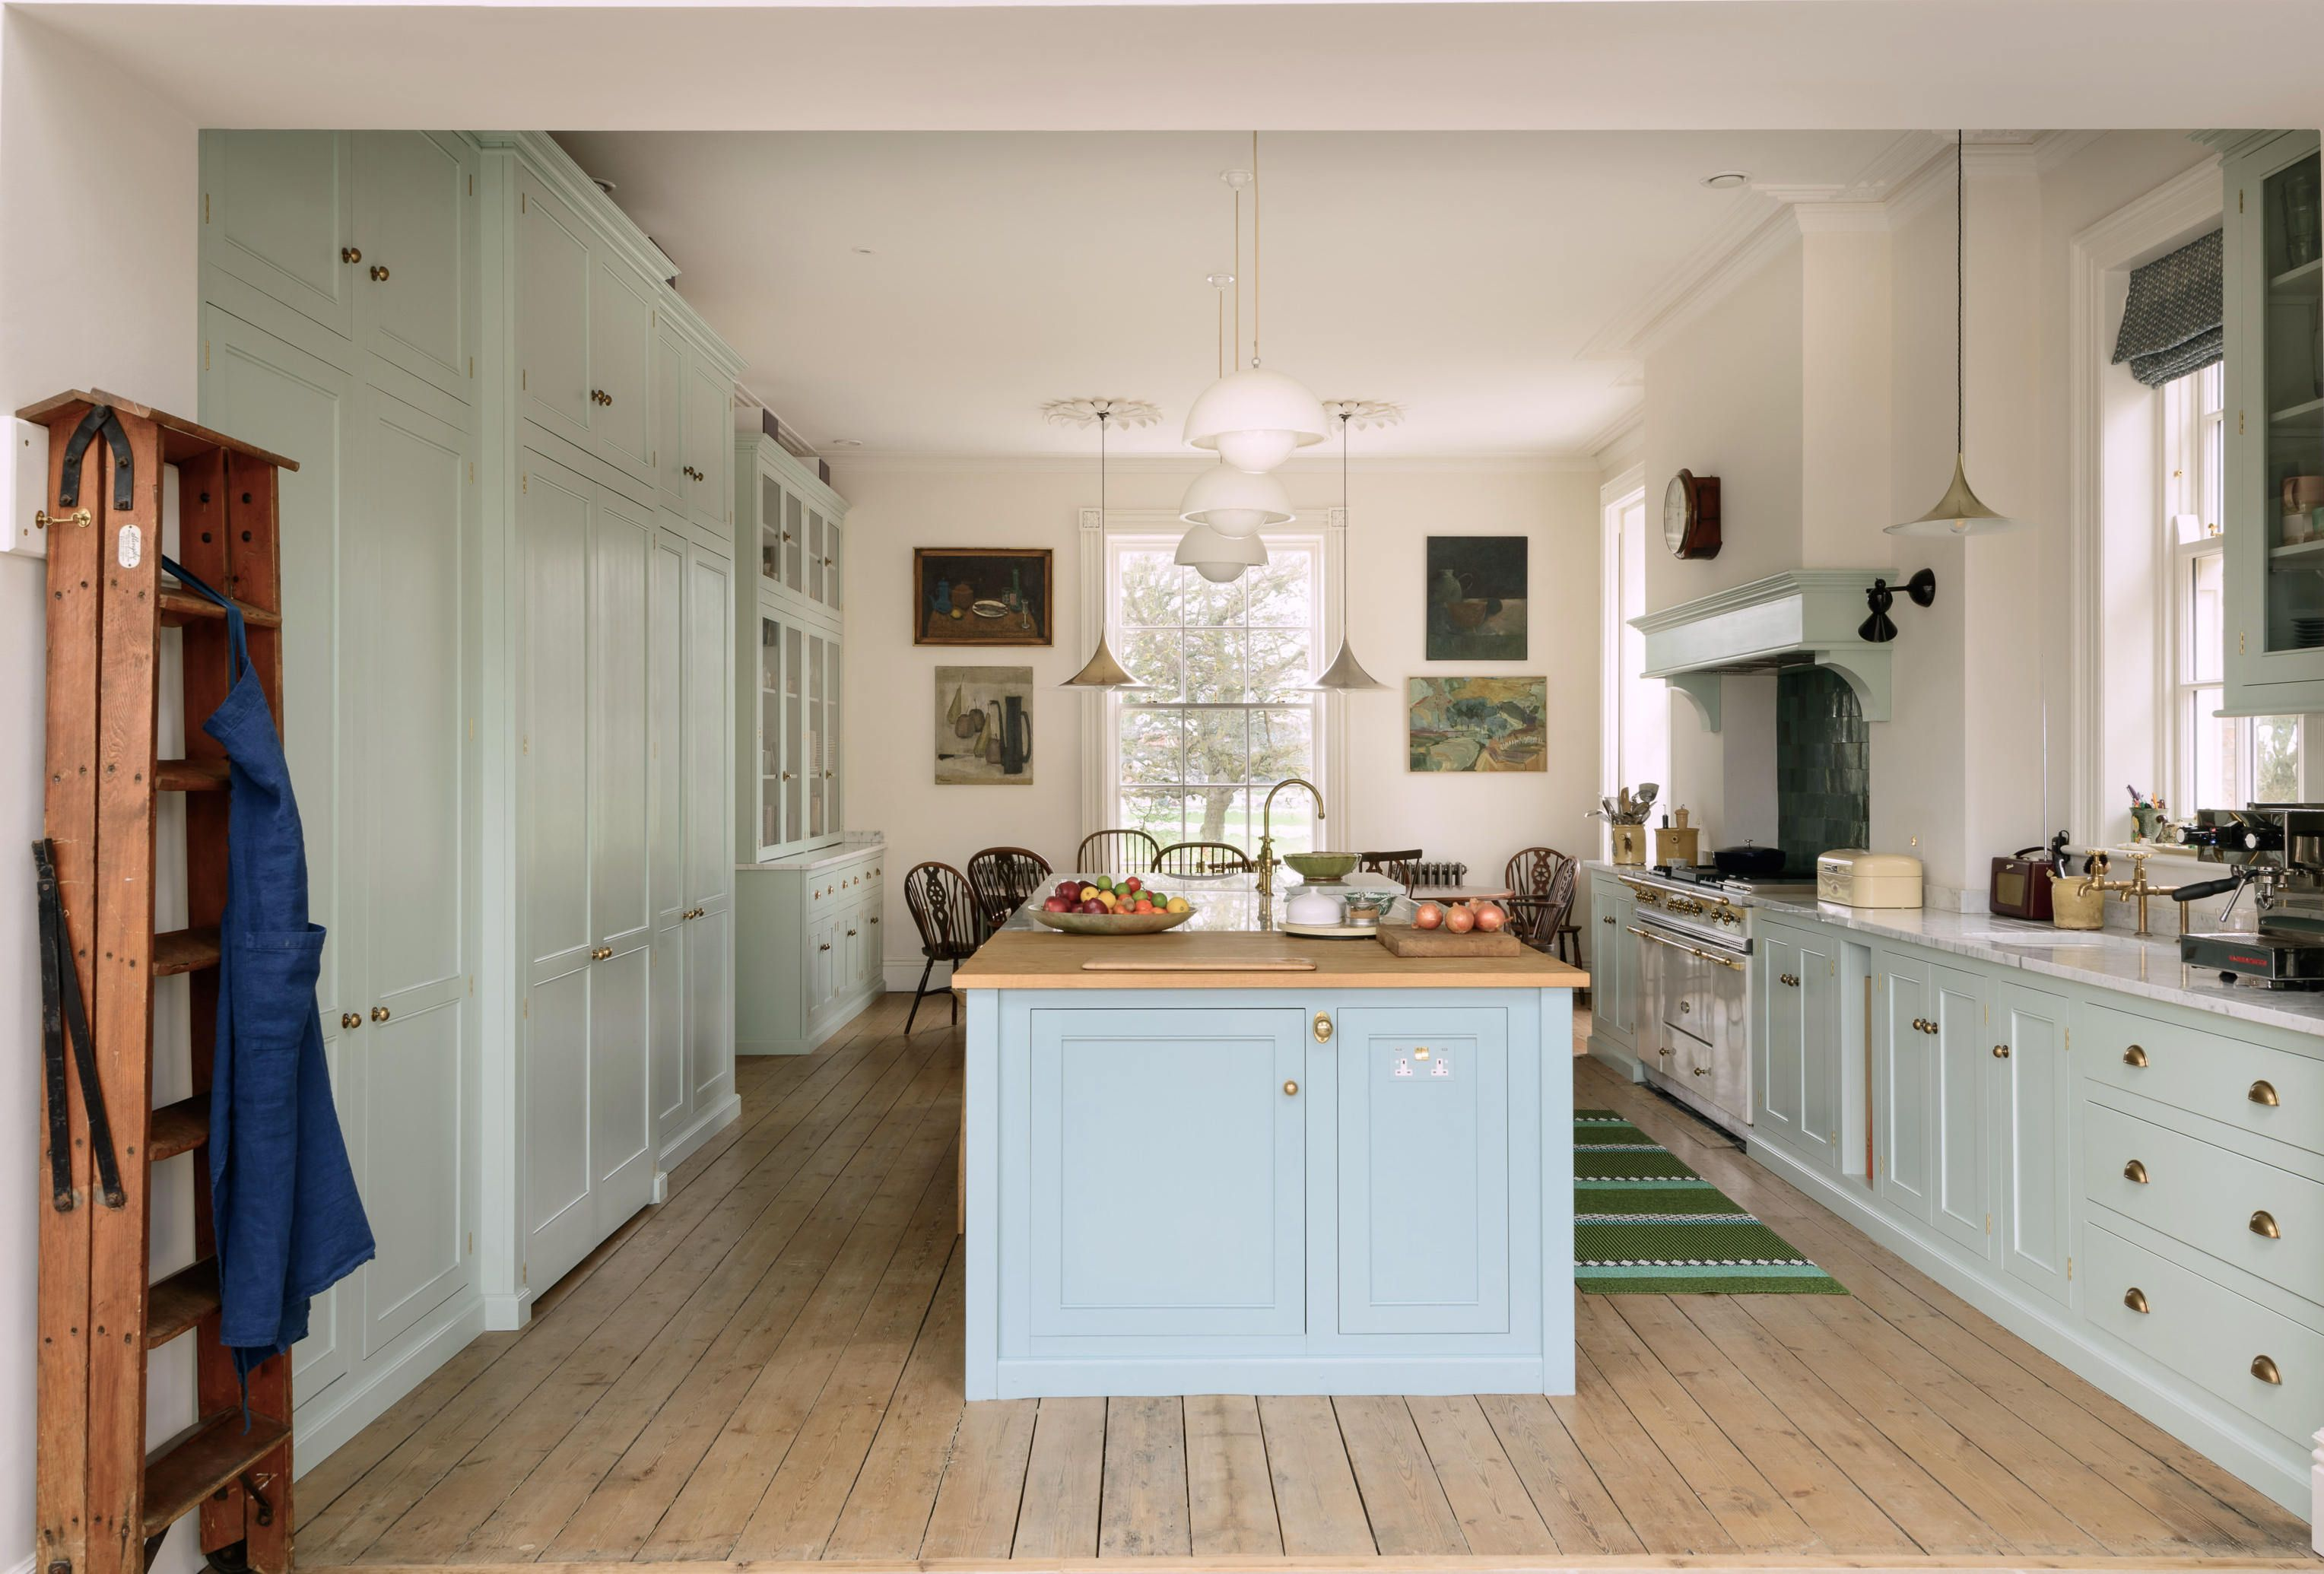 From Devol A Dream English Kitchen Size Extra Large For Family Living And Entertaining Devol Kitchens Kitchen Cabinet Remodel Craftsman Kitchen